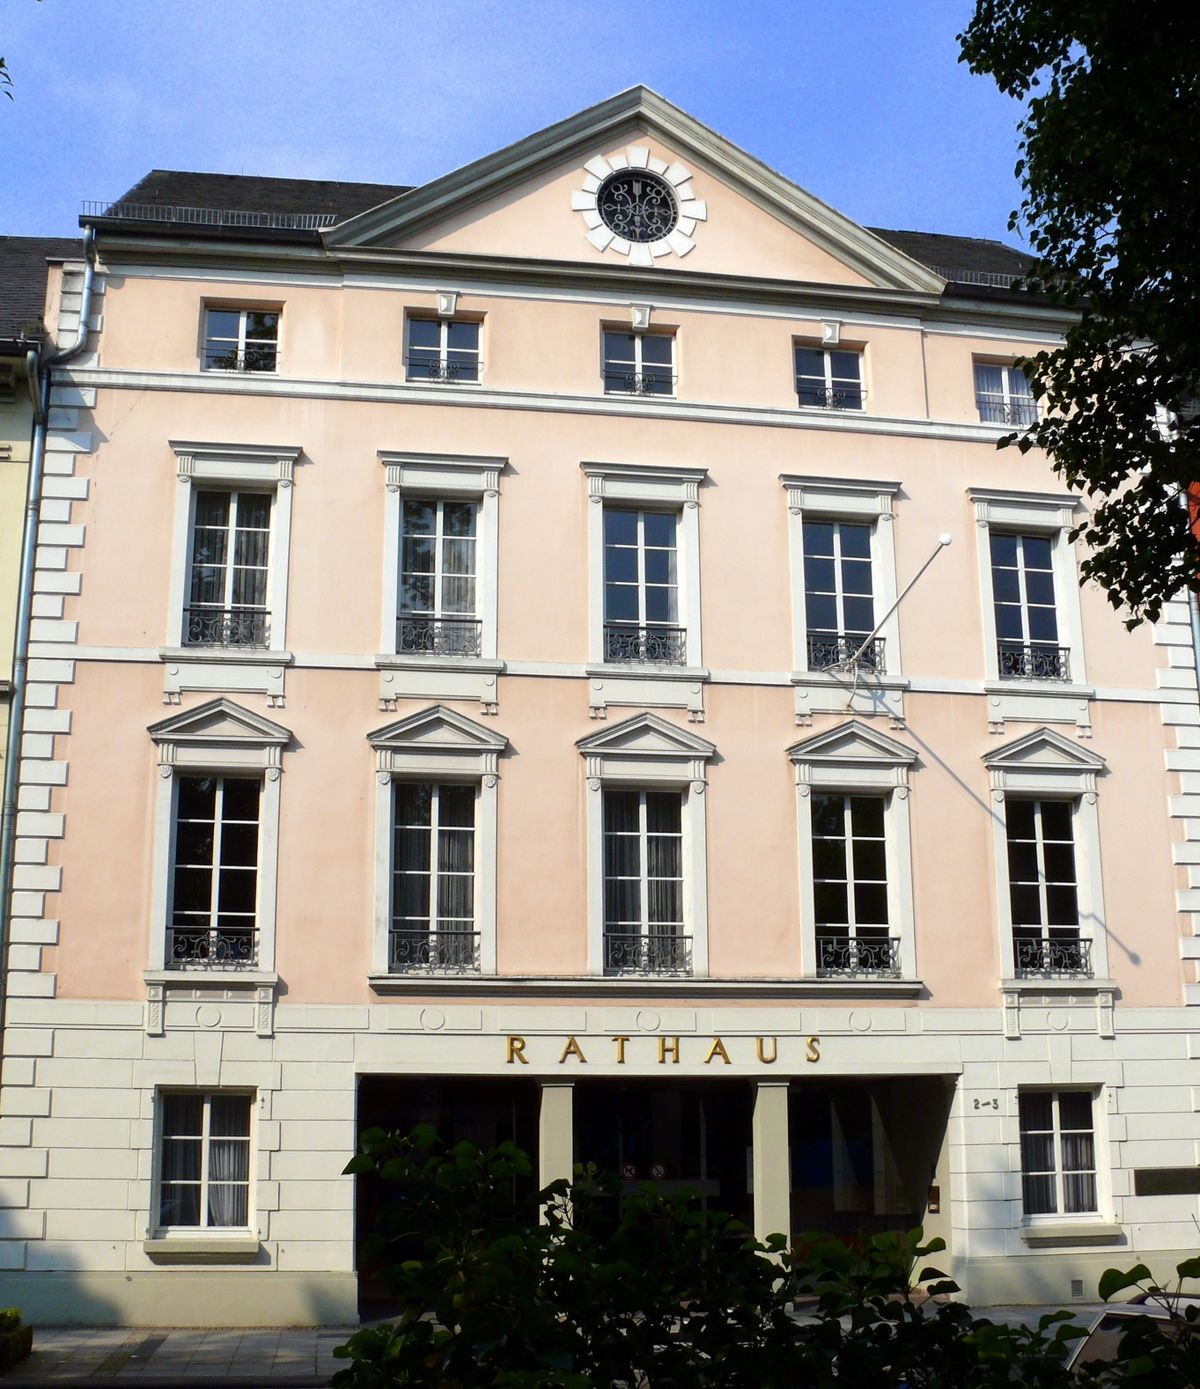 Kleines Theater Bad Godesberg Bad Godesberg Bonn Wiki